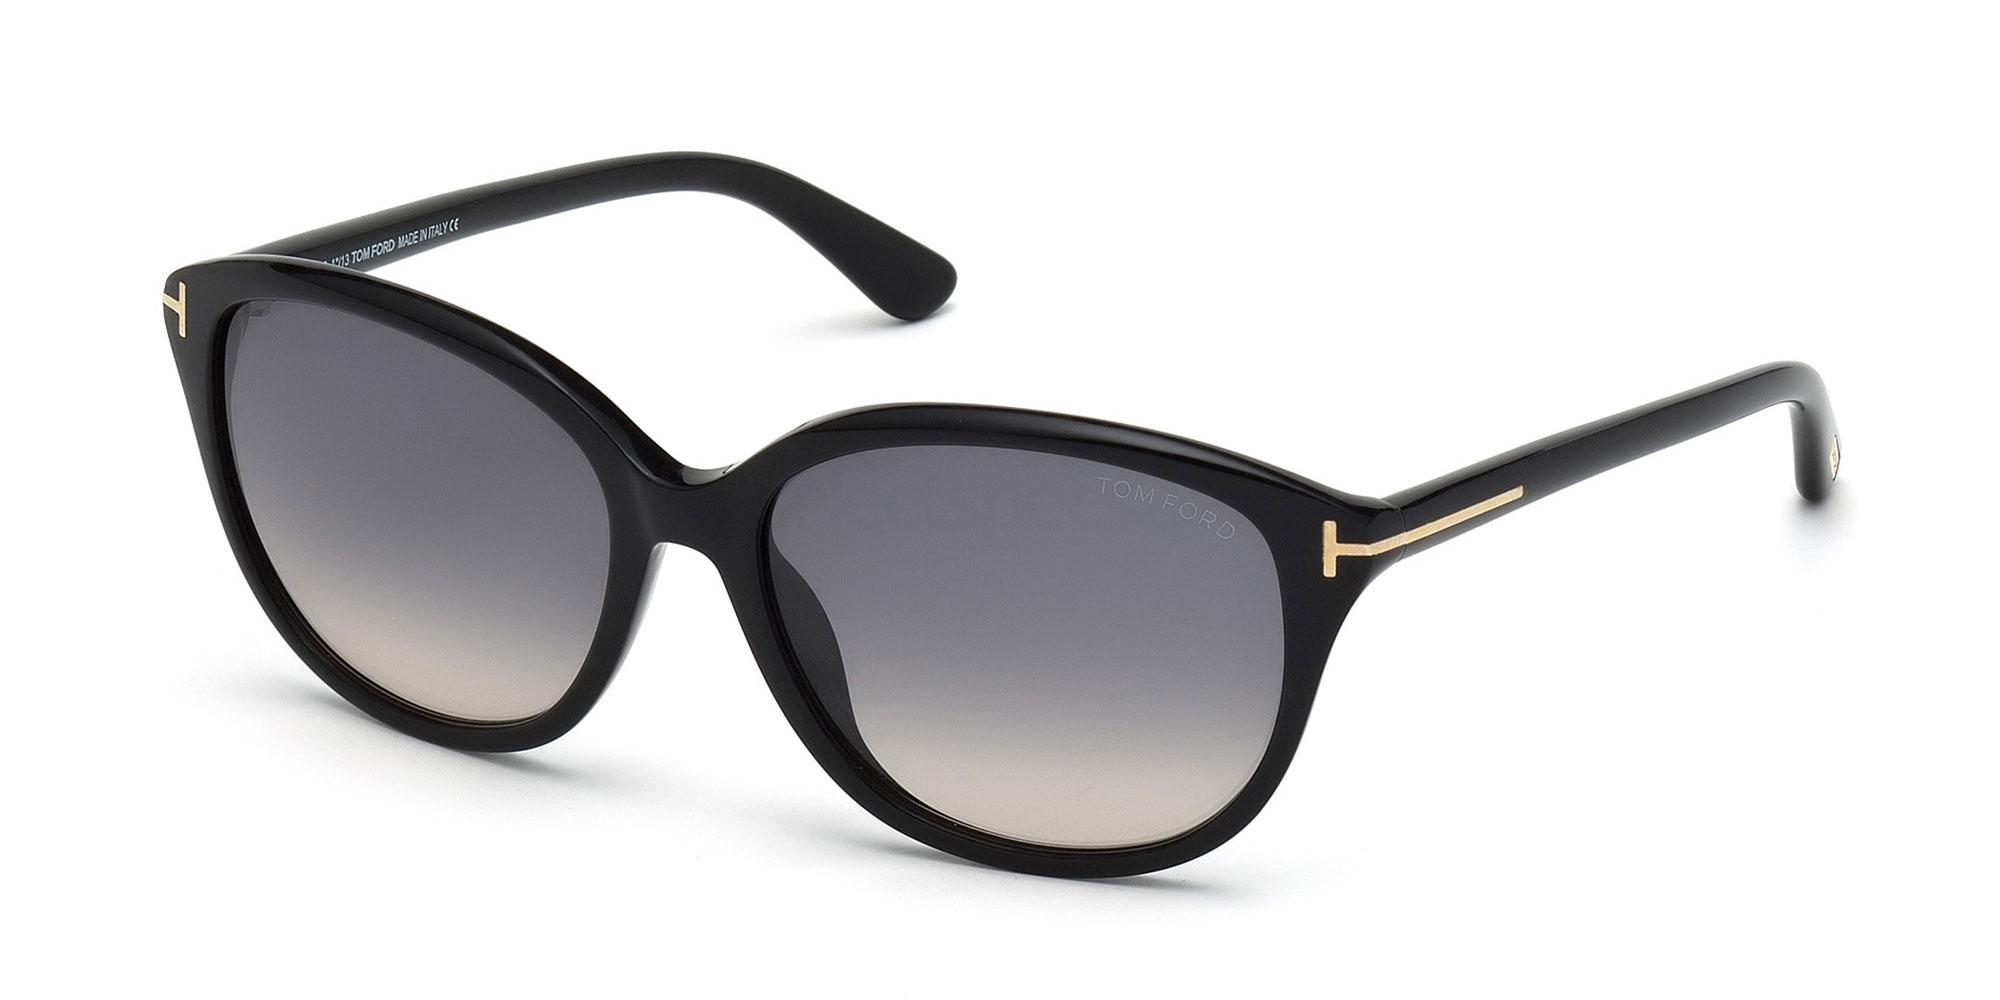 01B FT0329 KARMEN Sunglasses, Tom Ford